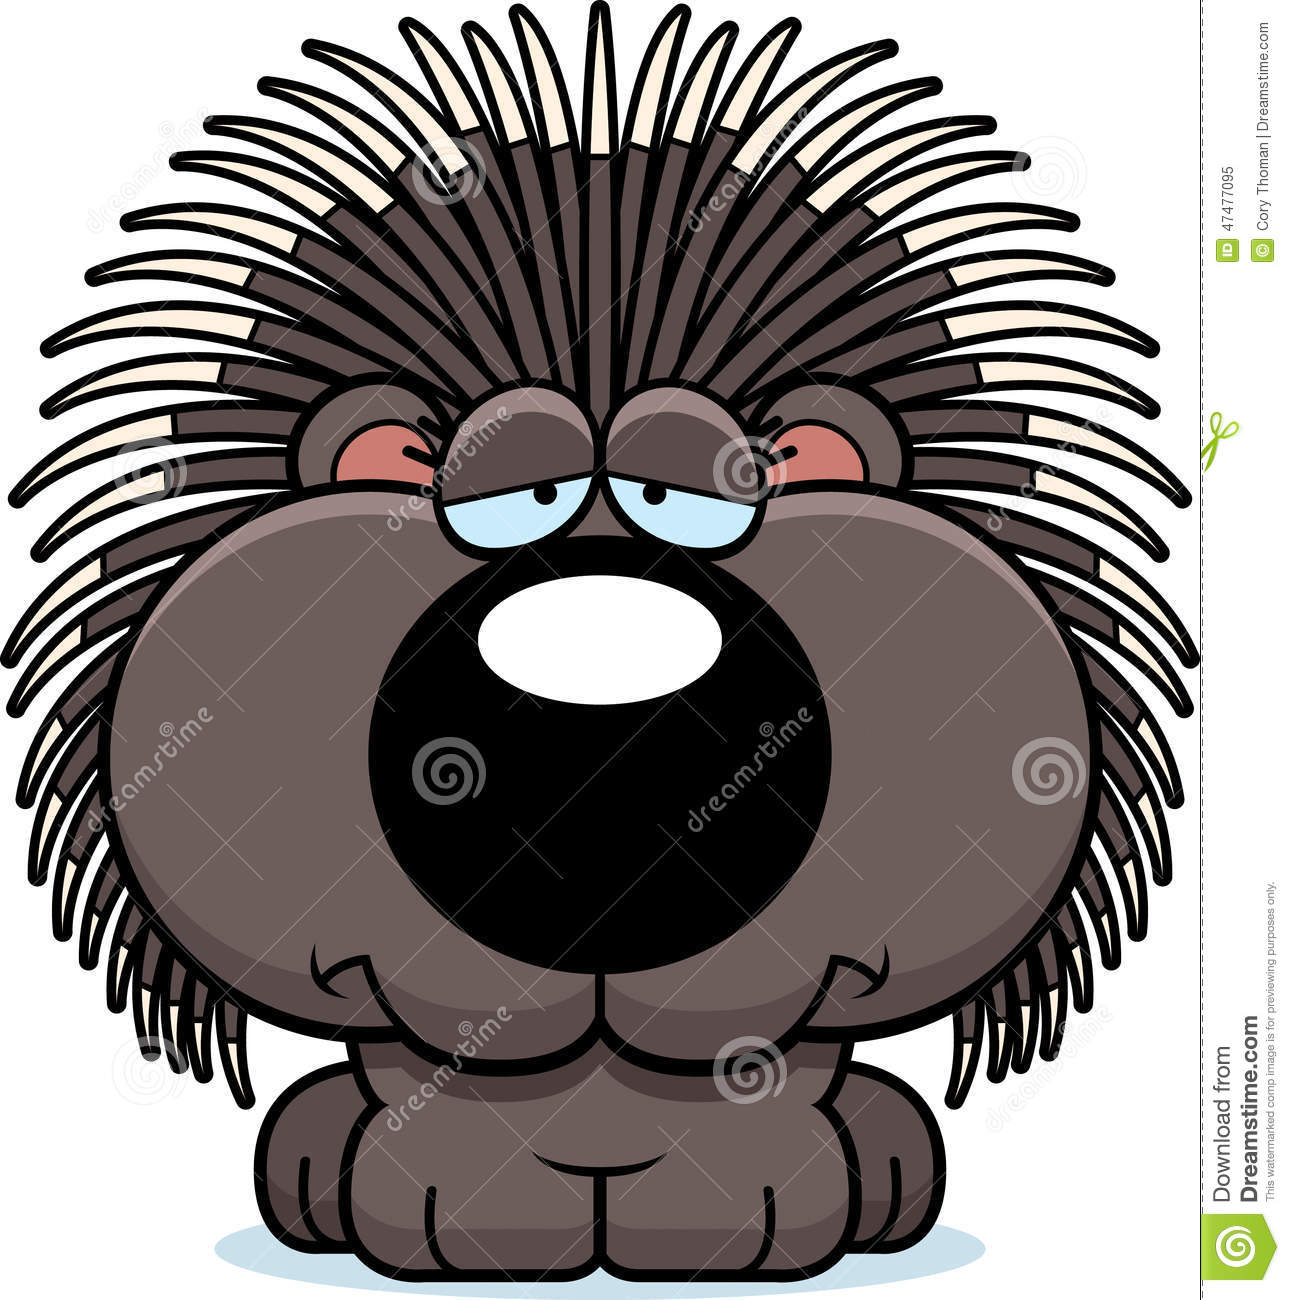 hight resolution of a cartoon illustration of a porcupine with a sad expression